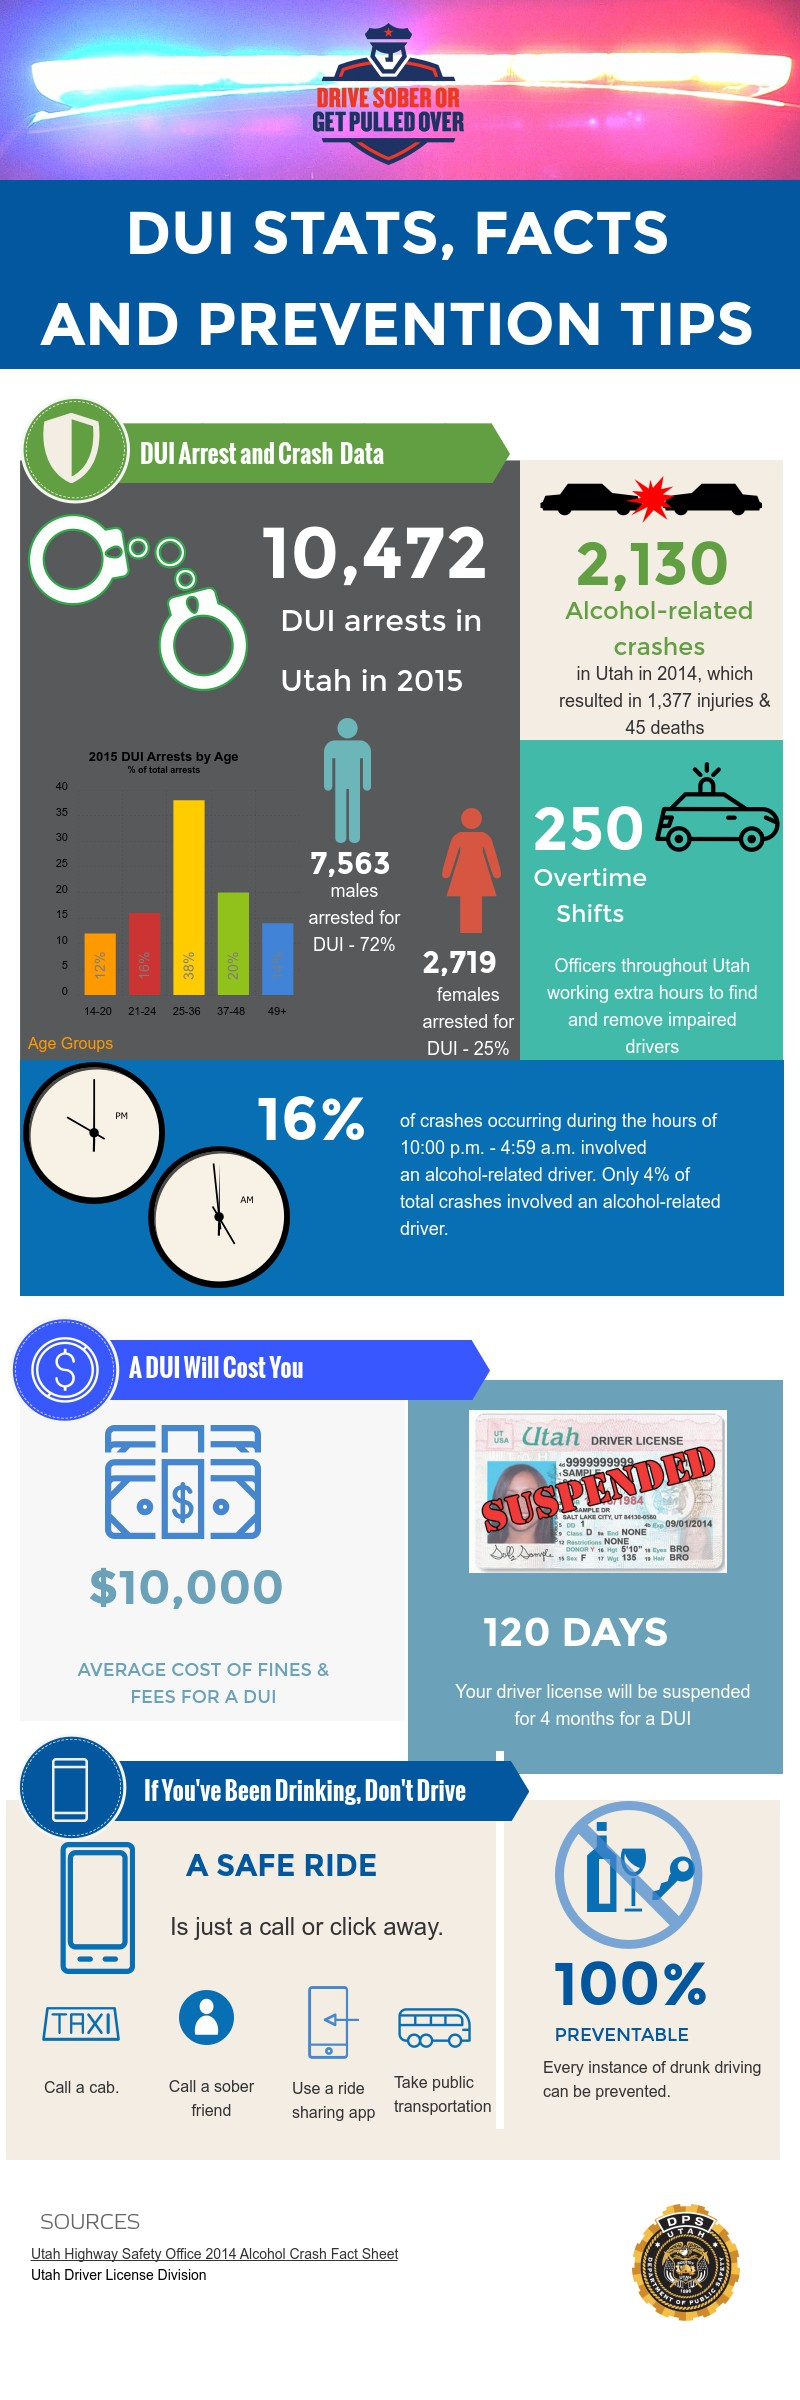 Infographic with information about DUI arrests, stats, crashes and prevention tips